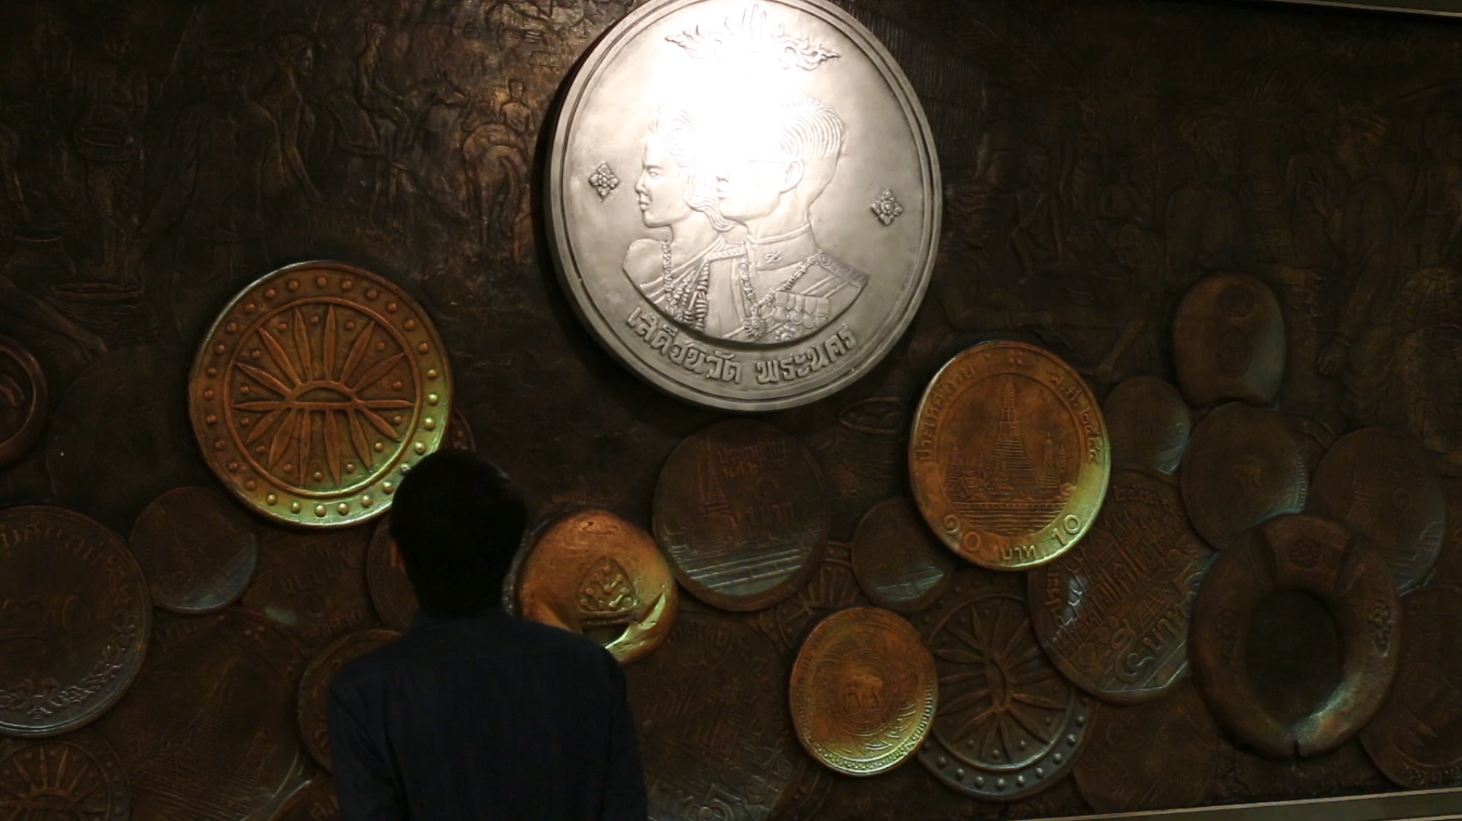 Giant Projected Coins Tell the Stories Behind Thai Currency - VICE